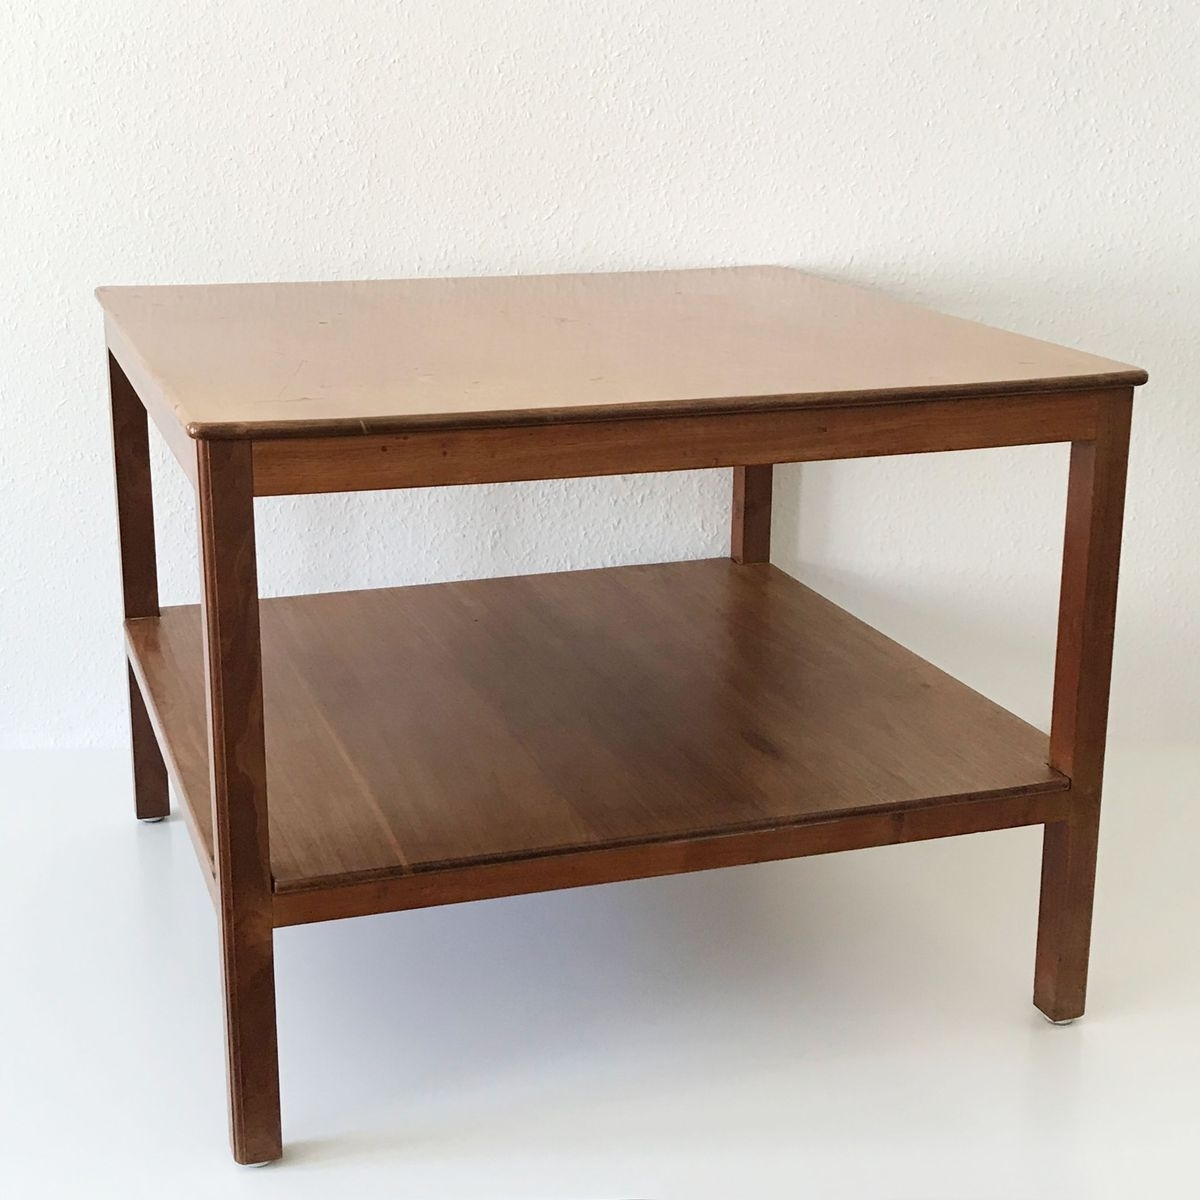 Danish Minimalist Coffee Tablekaare Klint For Rud Rasmussen intended for Minimalist Coffee Tables (Image 2 of 30)